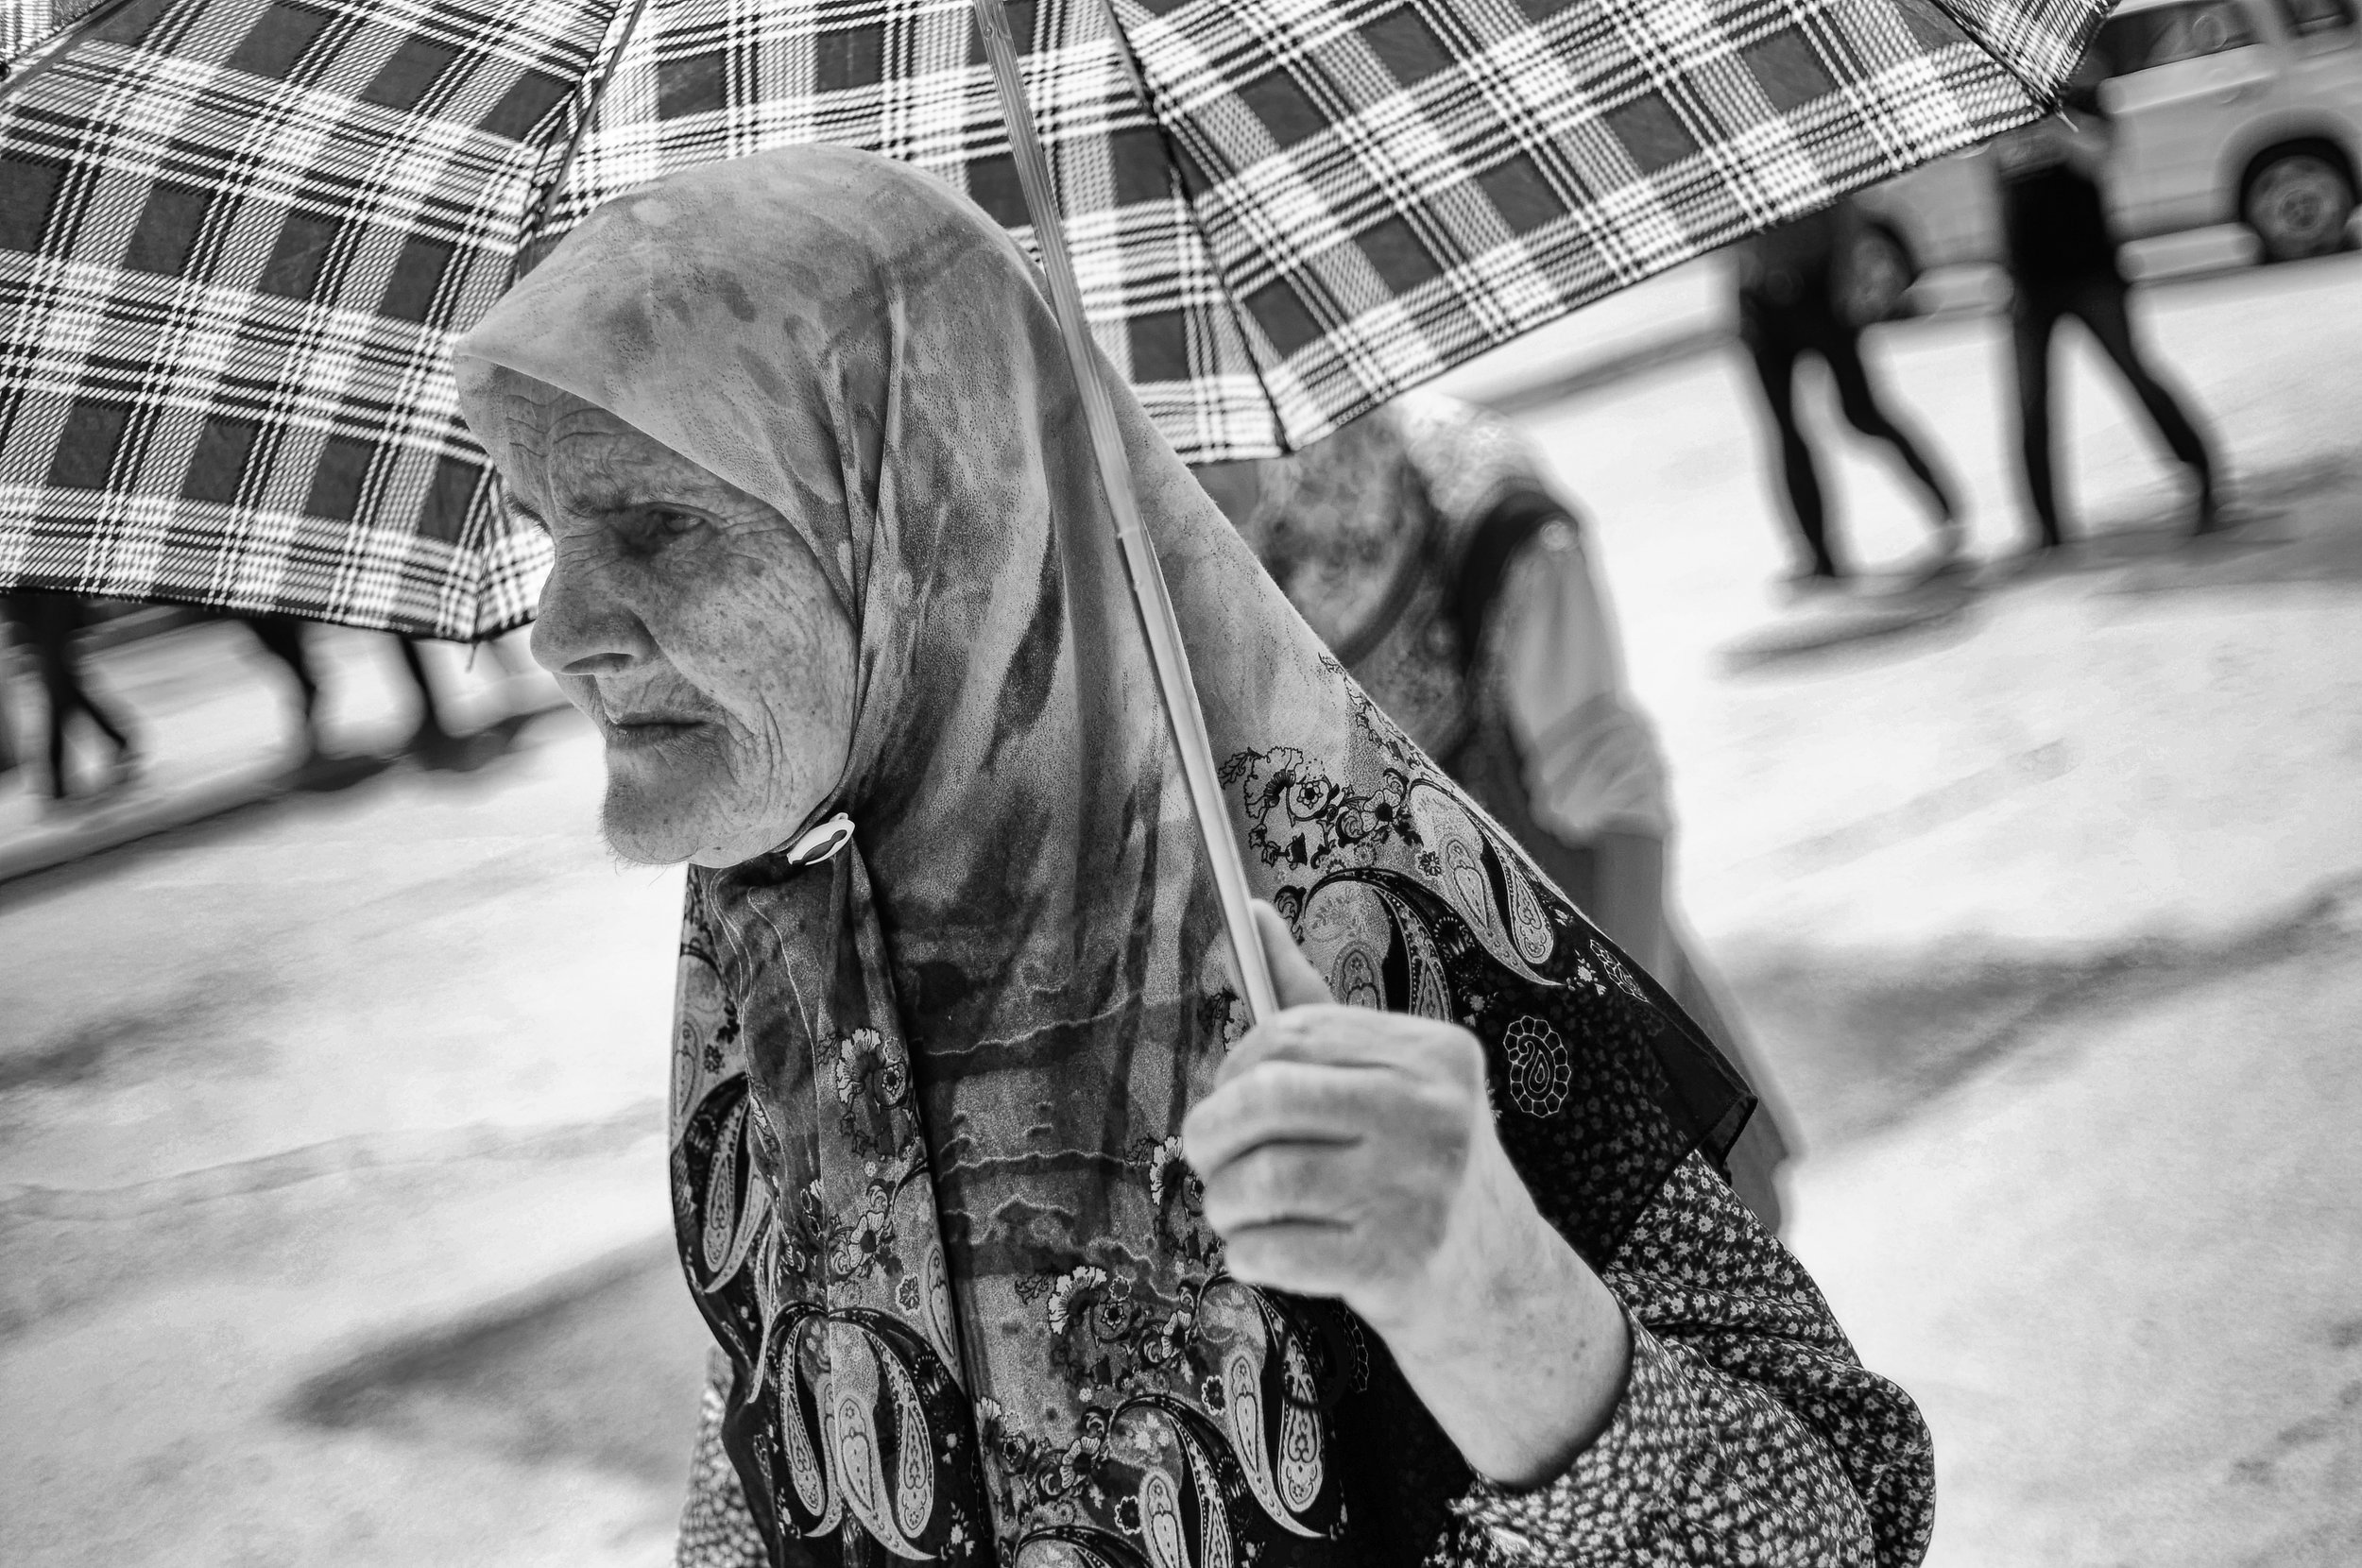 A Muslim woman walks through the Serb dominated town of Visegrád on her way to the funeral of 17 recently identified Muslims who were the victims of the region's 1992 genocide.